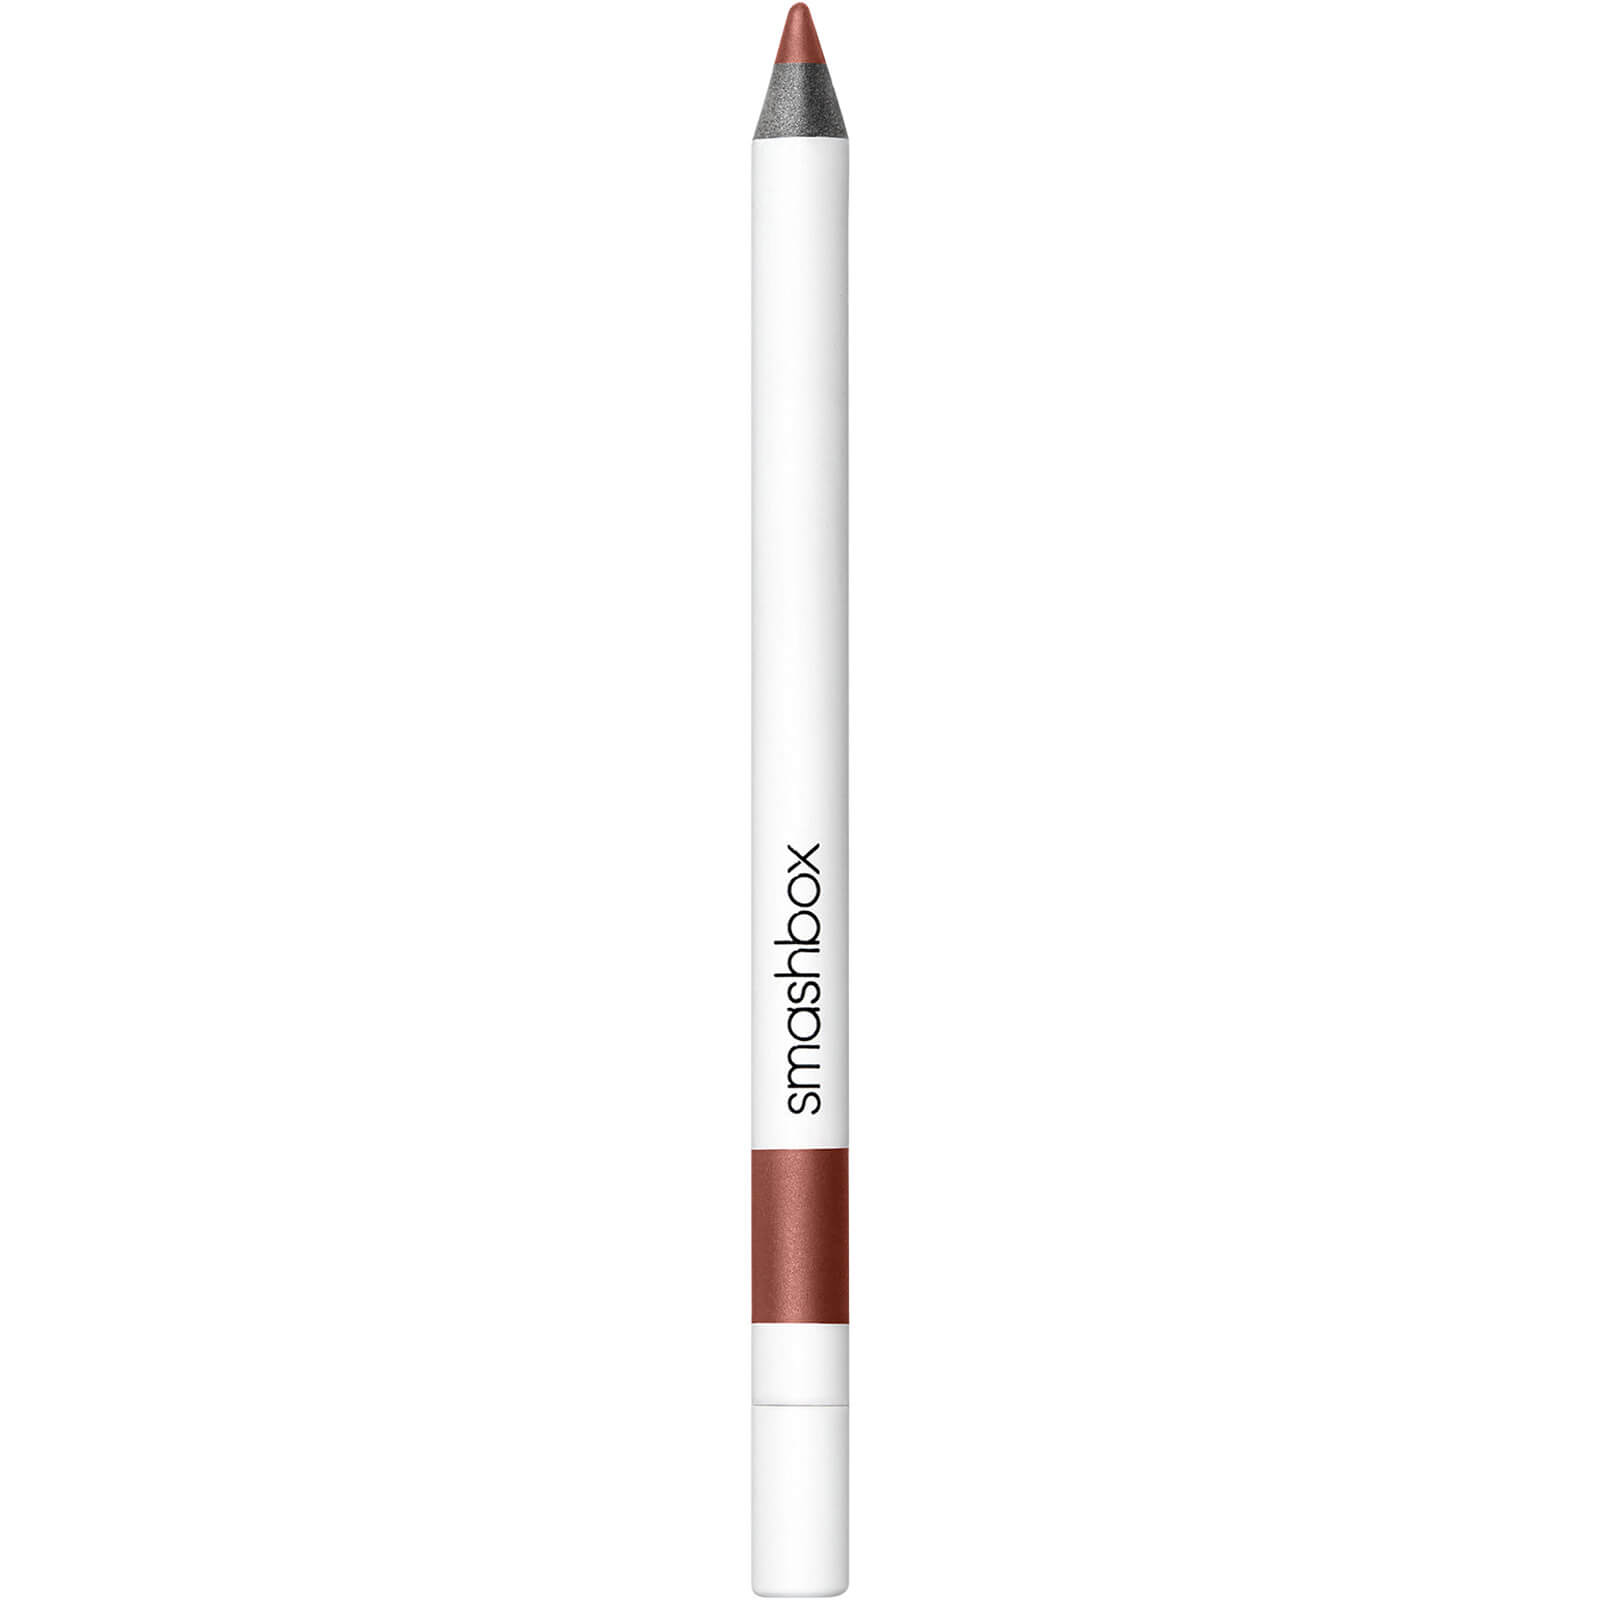 Smashbox Be Legendary Line and Prime Pencil 1.2g (Various Shades) - Nude Rose